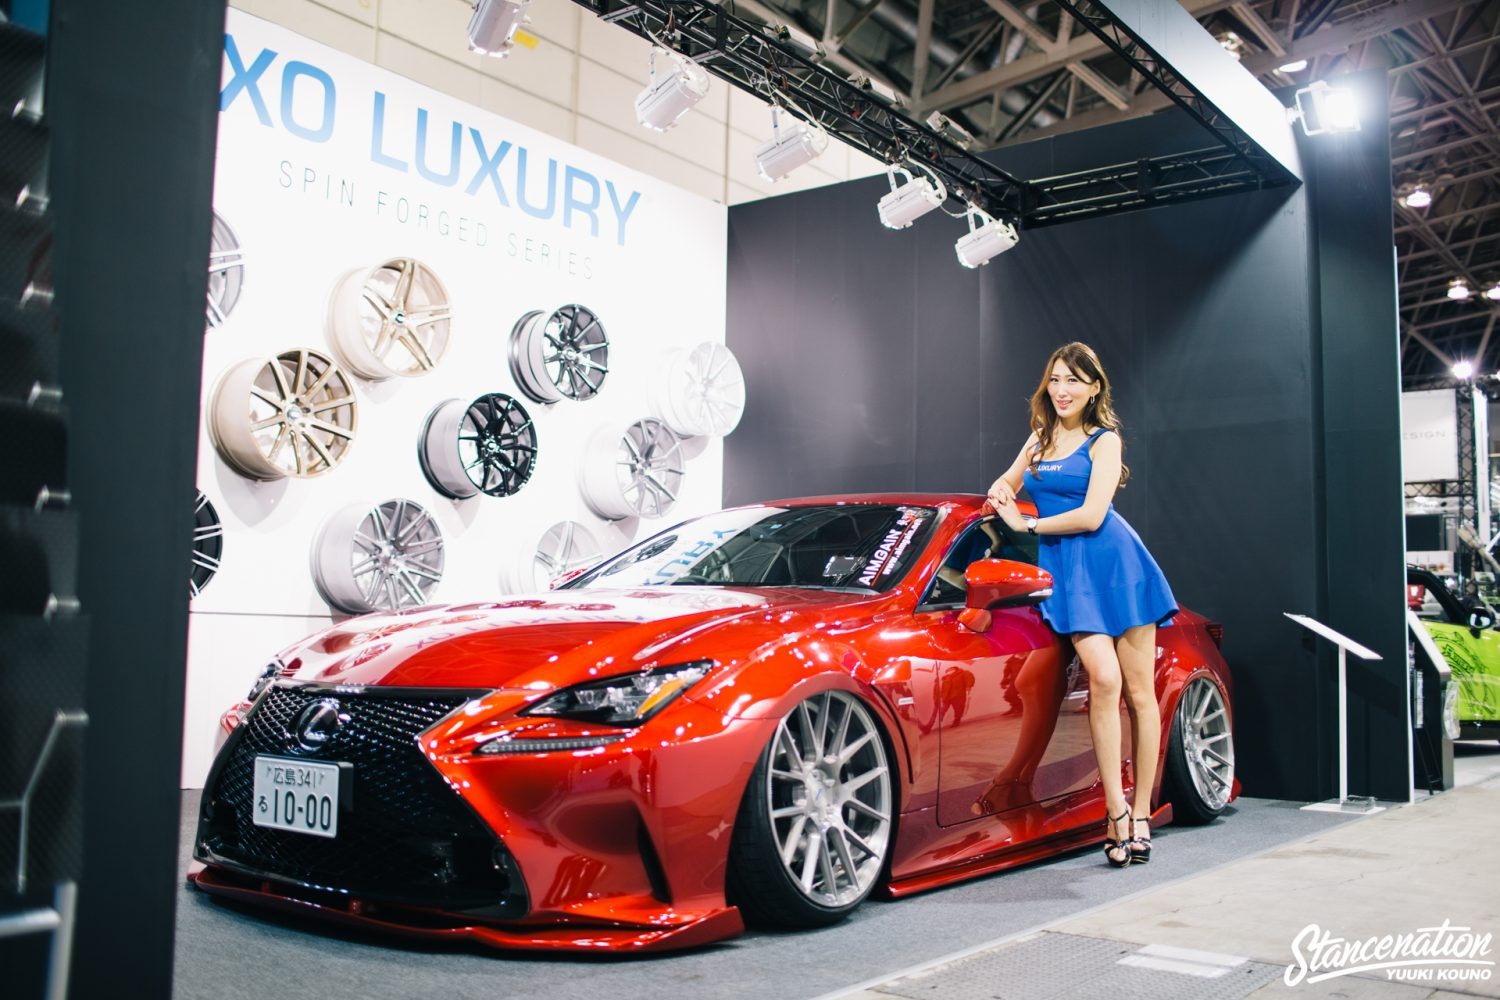 Tokyo Auto Salon 2017 Photo Coverage Part 1